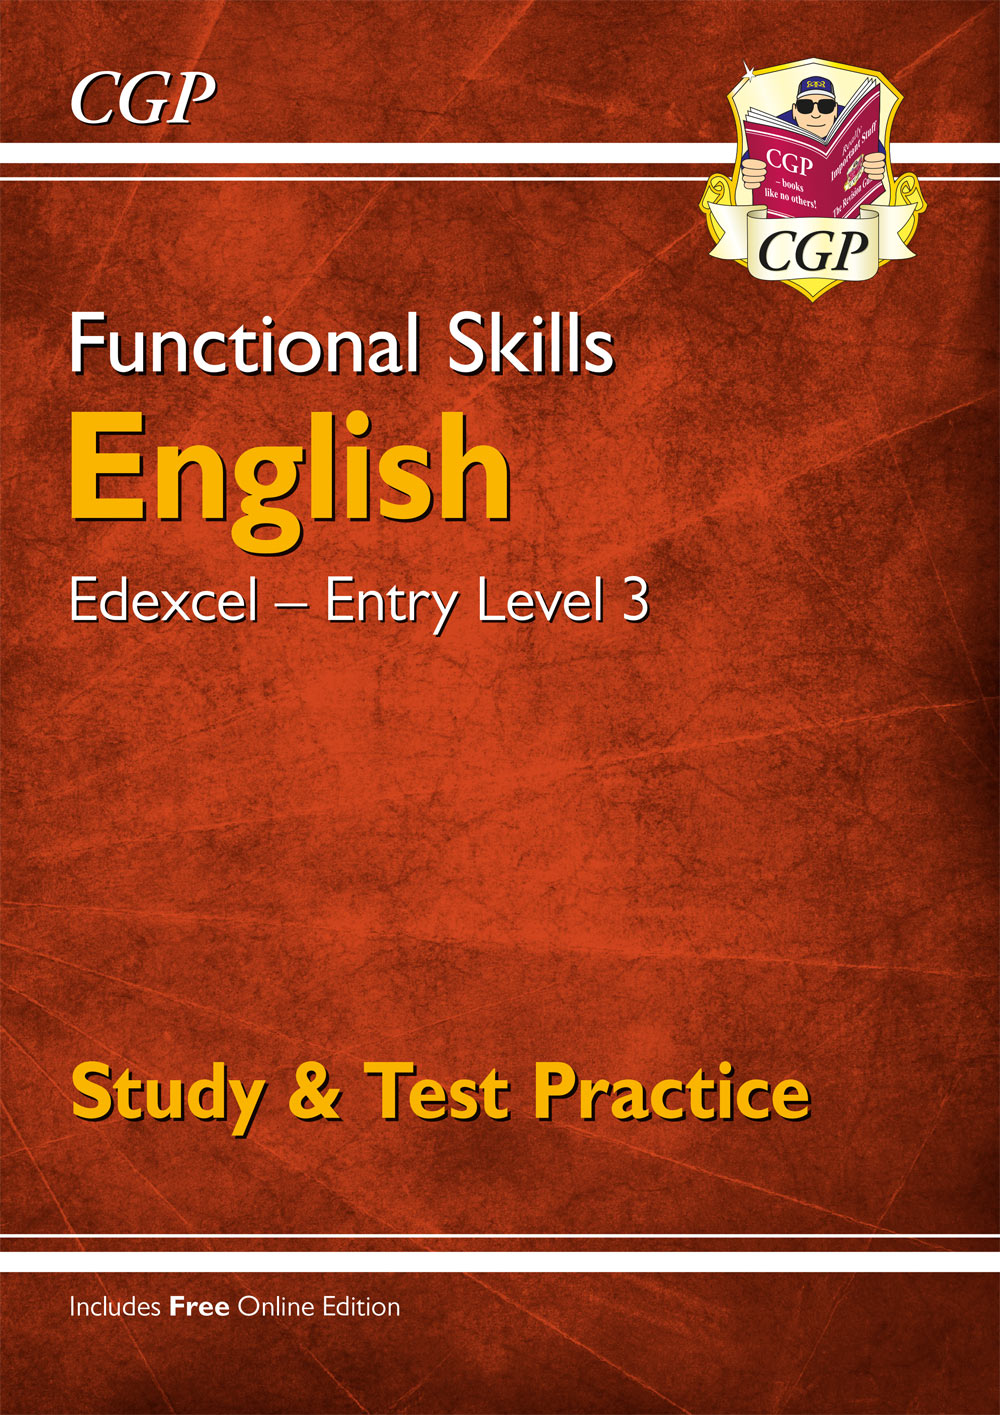 E3ESRA1 - Functional Skills English: Edexcel Entry Level 3 - Study & Test Practice (for 2021 & beyon